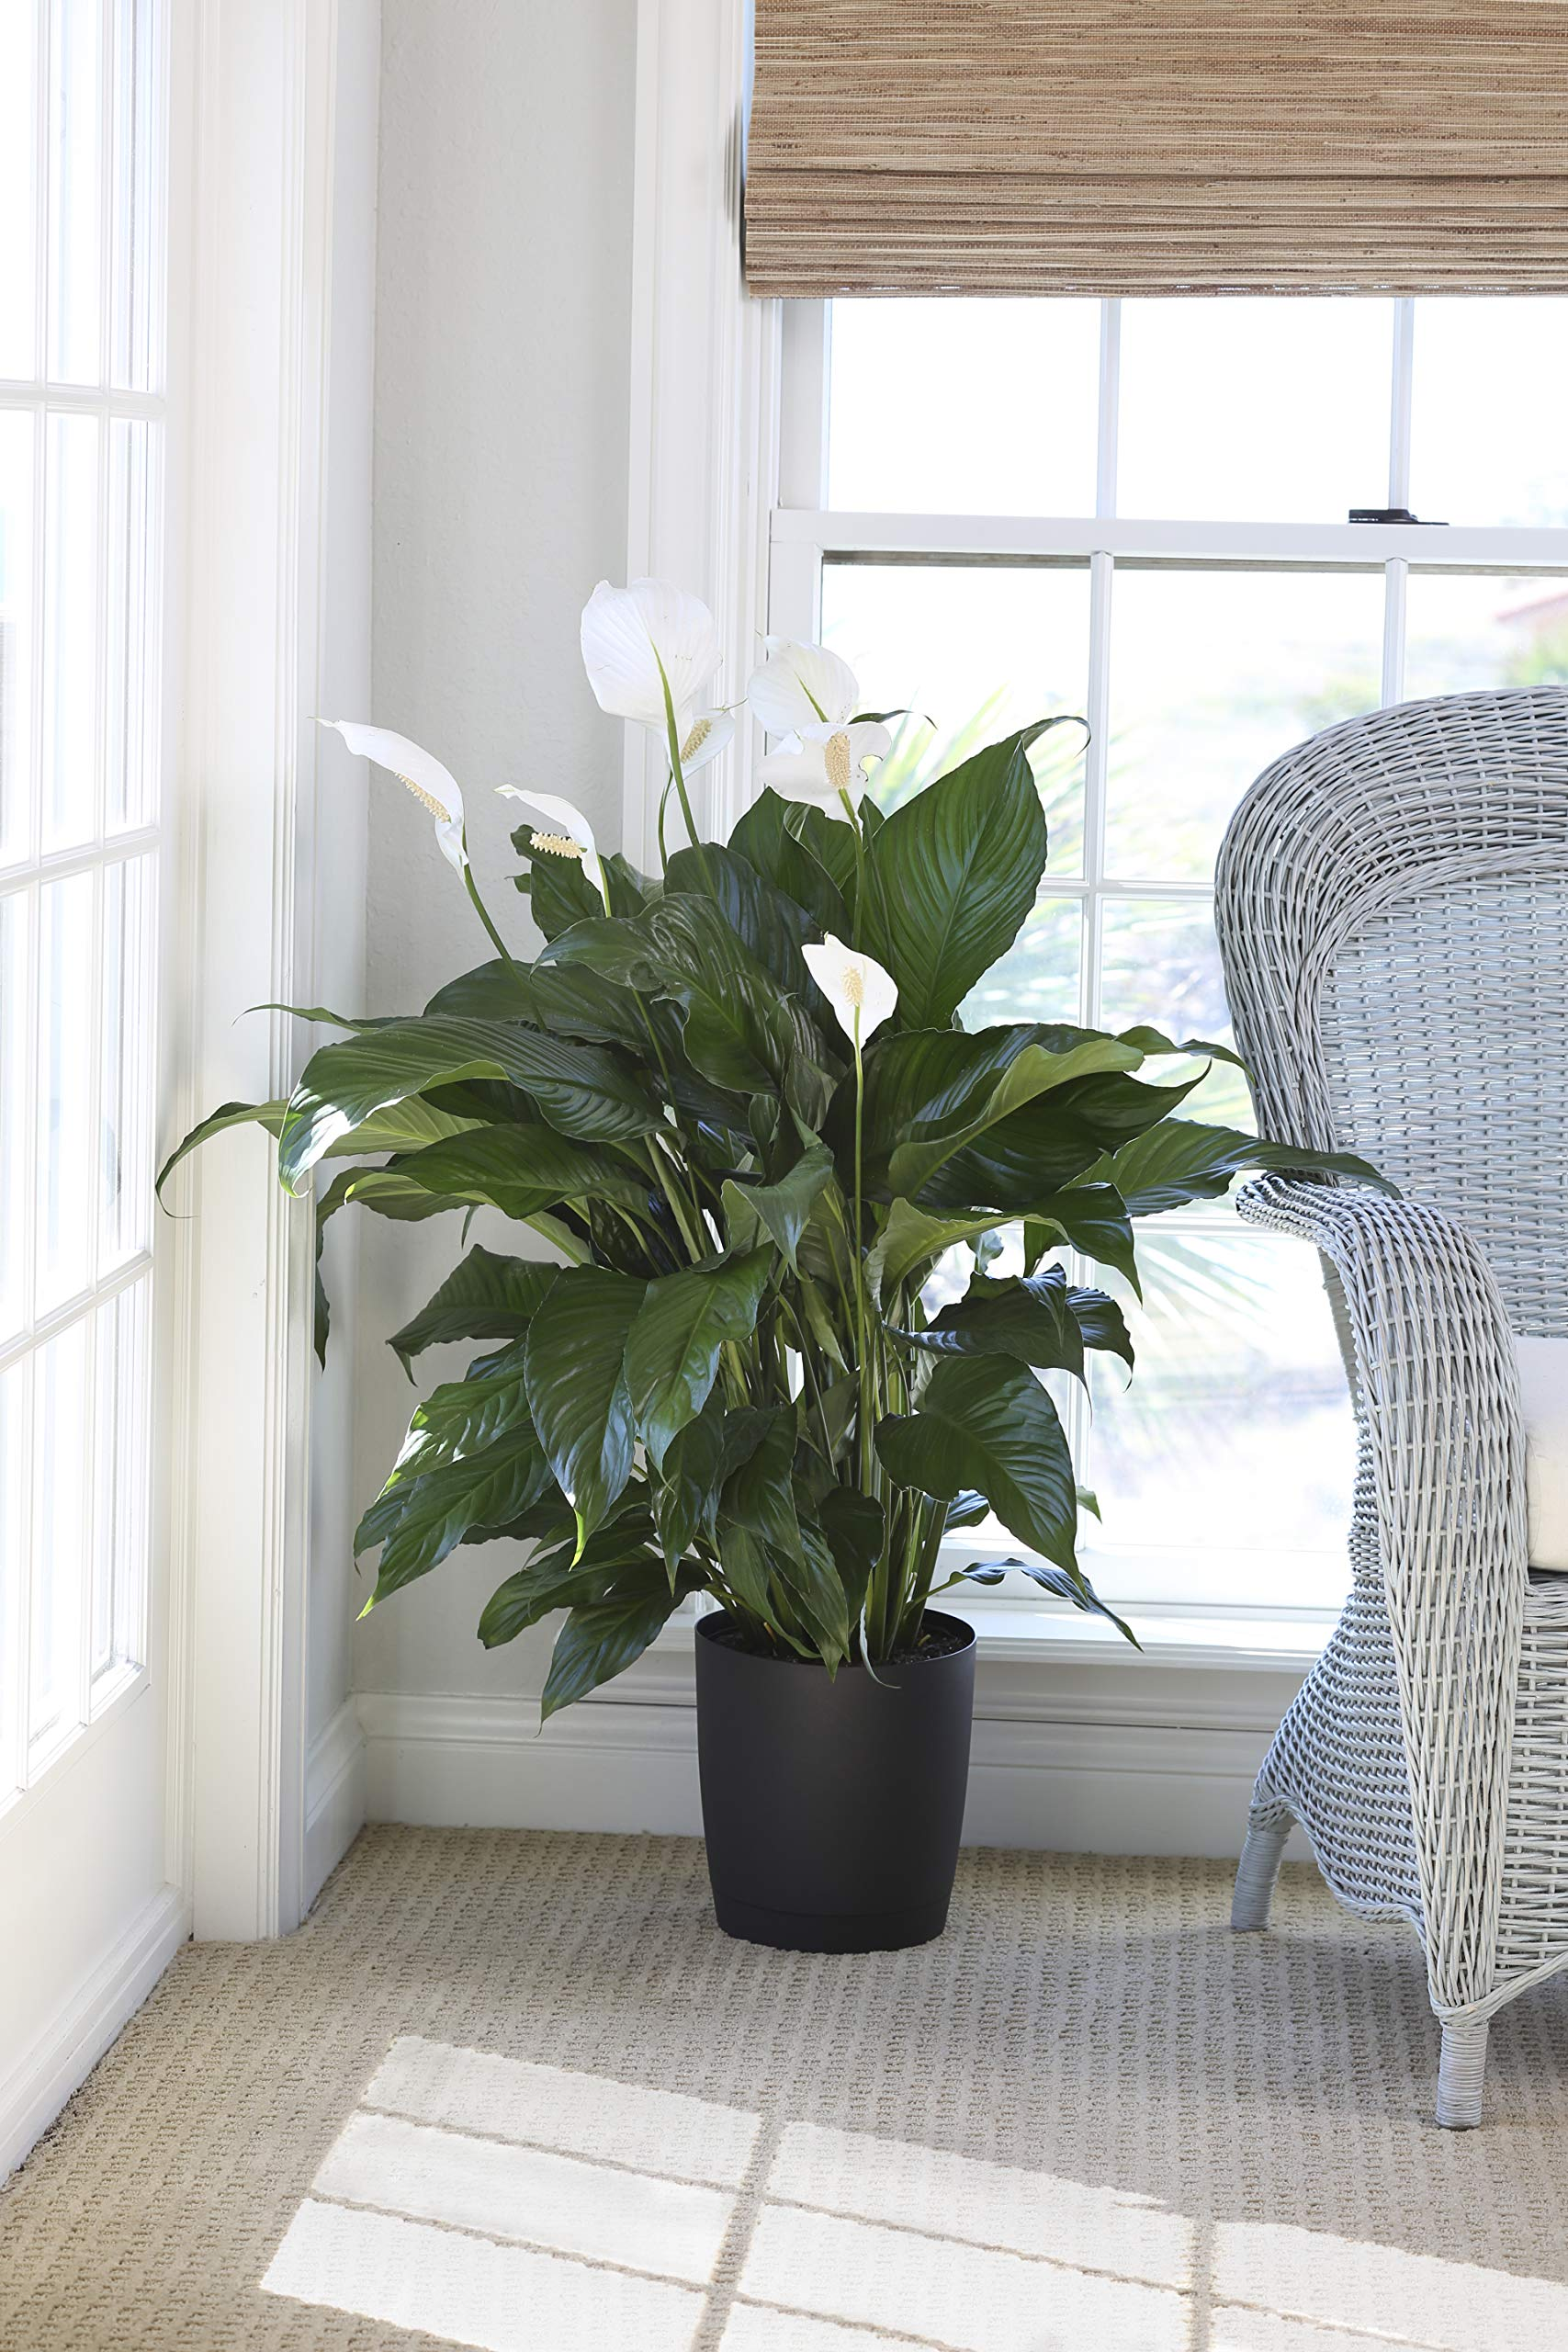 Costa Farms Peace lily, Spathiphyllum, Live Indoor Plant, 3-Feet Tall, Ships in Décor Planter, Fresh From Our Farm, Excellent Gift or Home Décor by Costa Farms (Image #3)